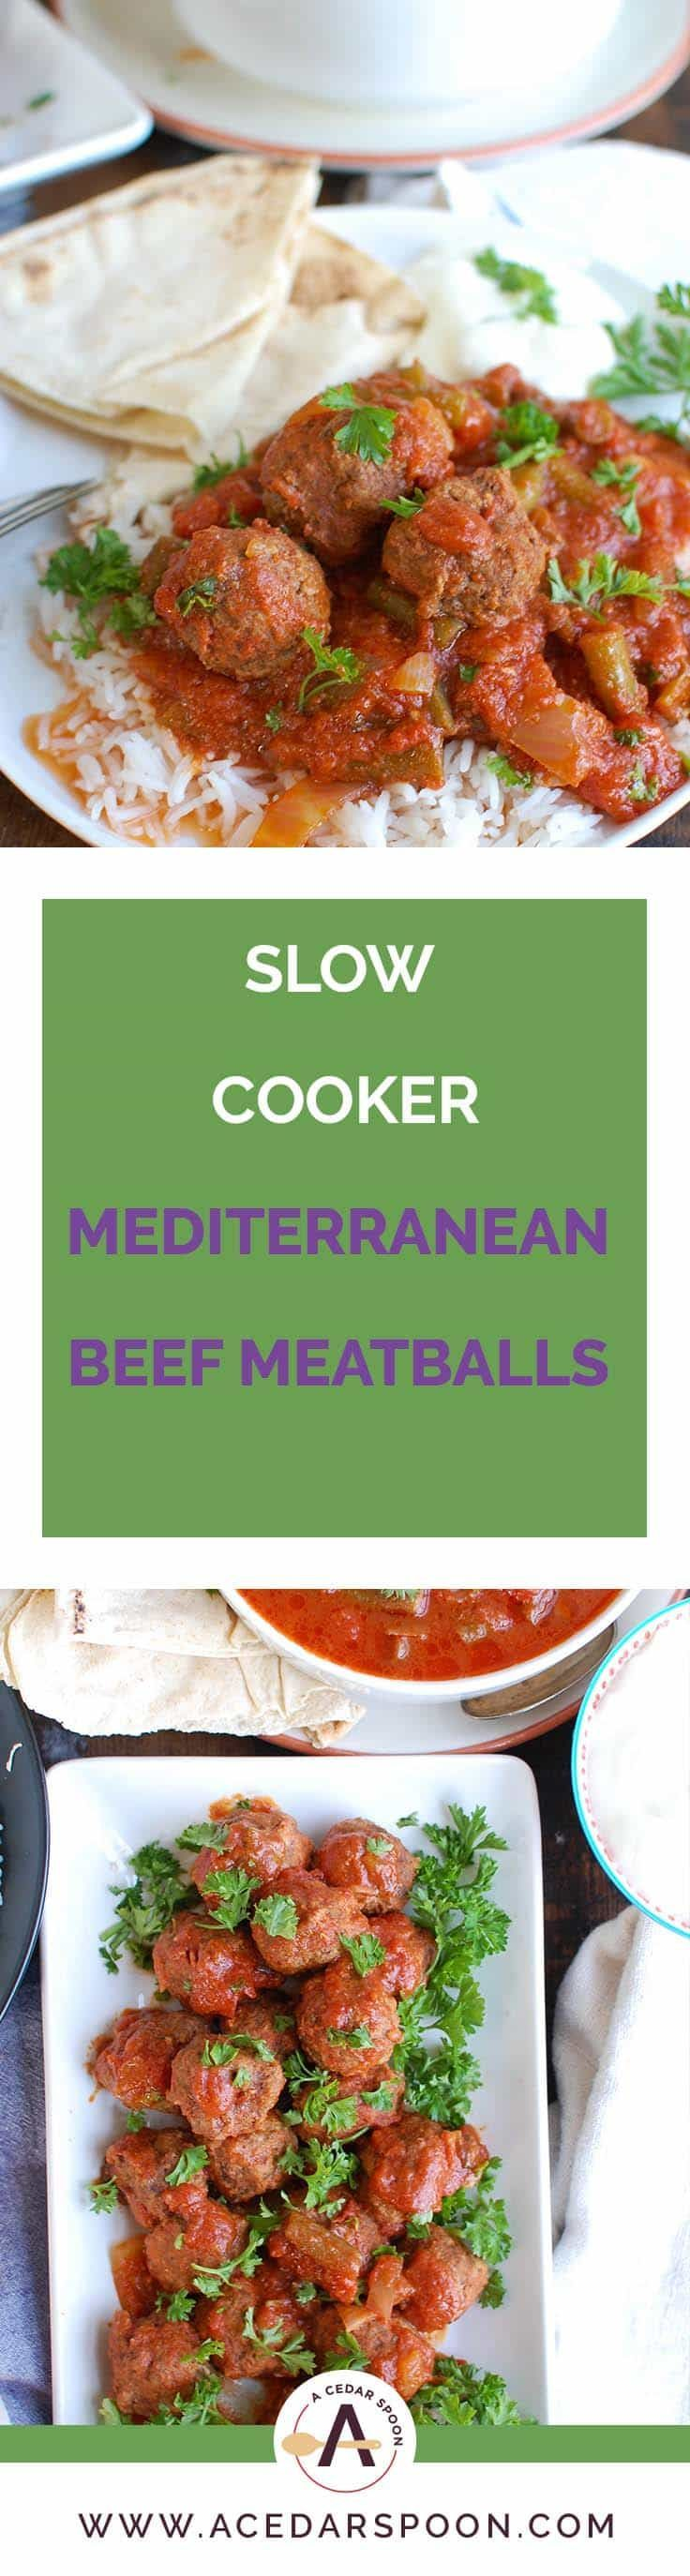 Slow Cooker Mediterranean Beef Meatballs with Lebanese Green Beans is full of warm spices and slow cooks in your crockpot to make dinner easy. Beef meatballs are spiced with Mediterranean flavors and slow cooker in Lebanese green beans creating the perfect sauce paired with the meatballs and rice. // A Cedar Spoon